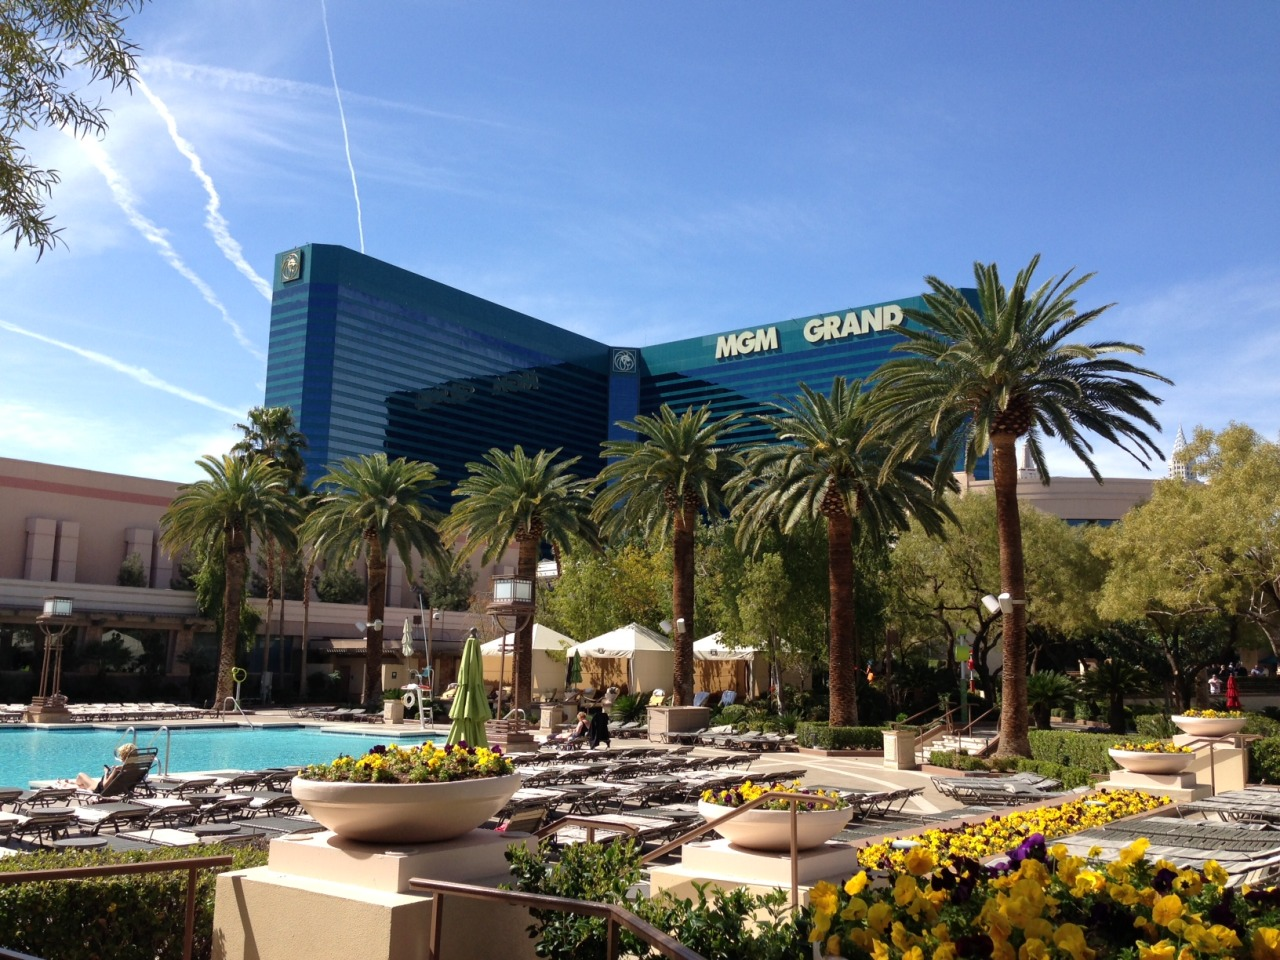 The sun shines brighter here. Get to Vegas now. http://bit.ly/13LGloJ